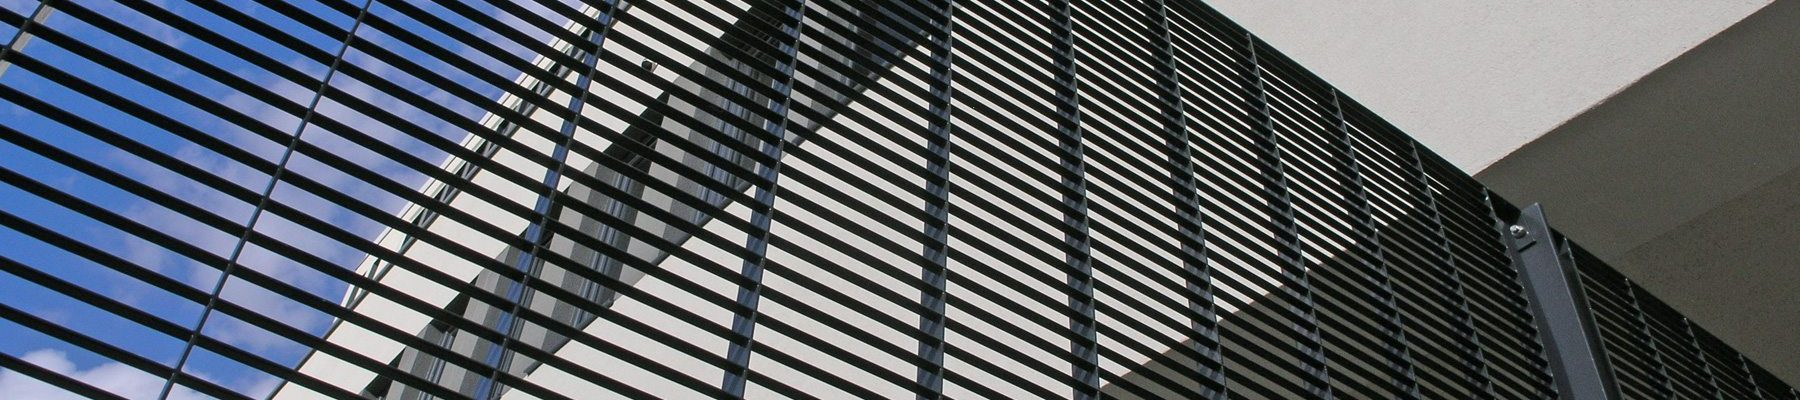 Banner-Torino-steel-grating-fence-perimeter-security-Channelsea-House-15